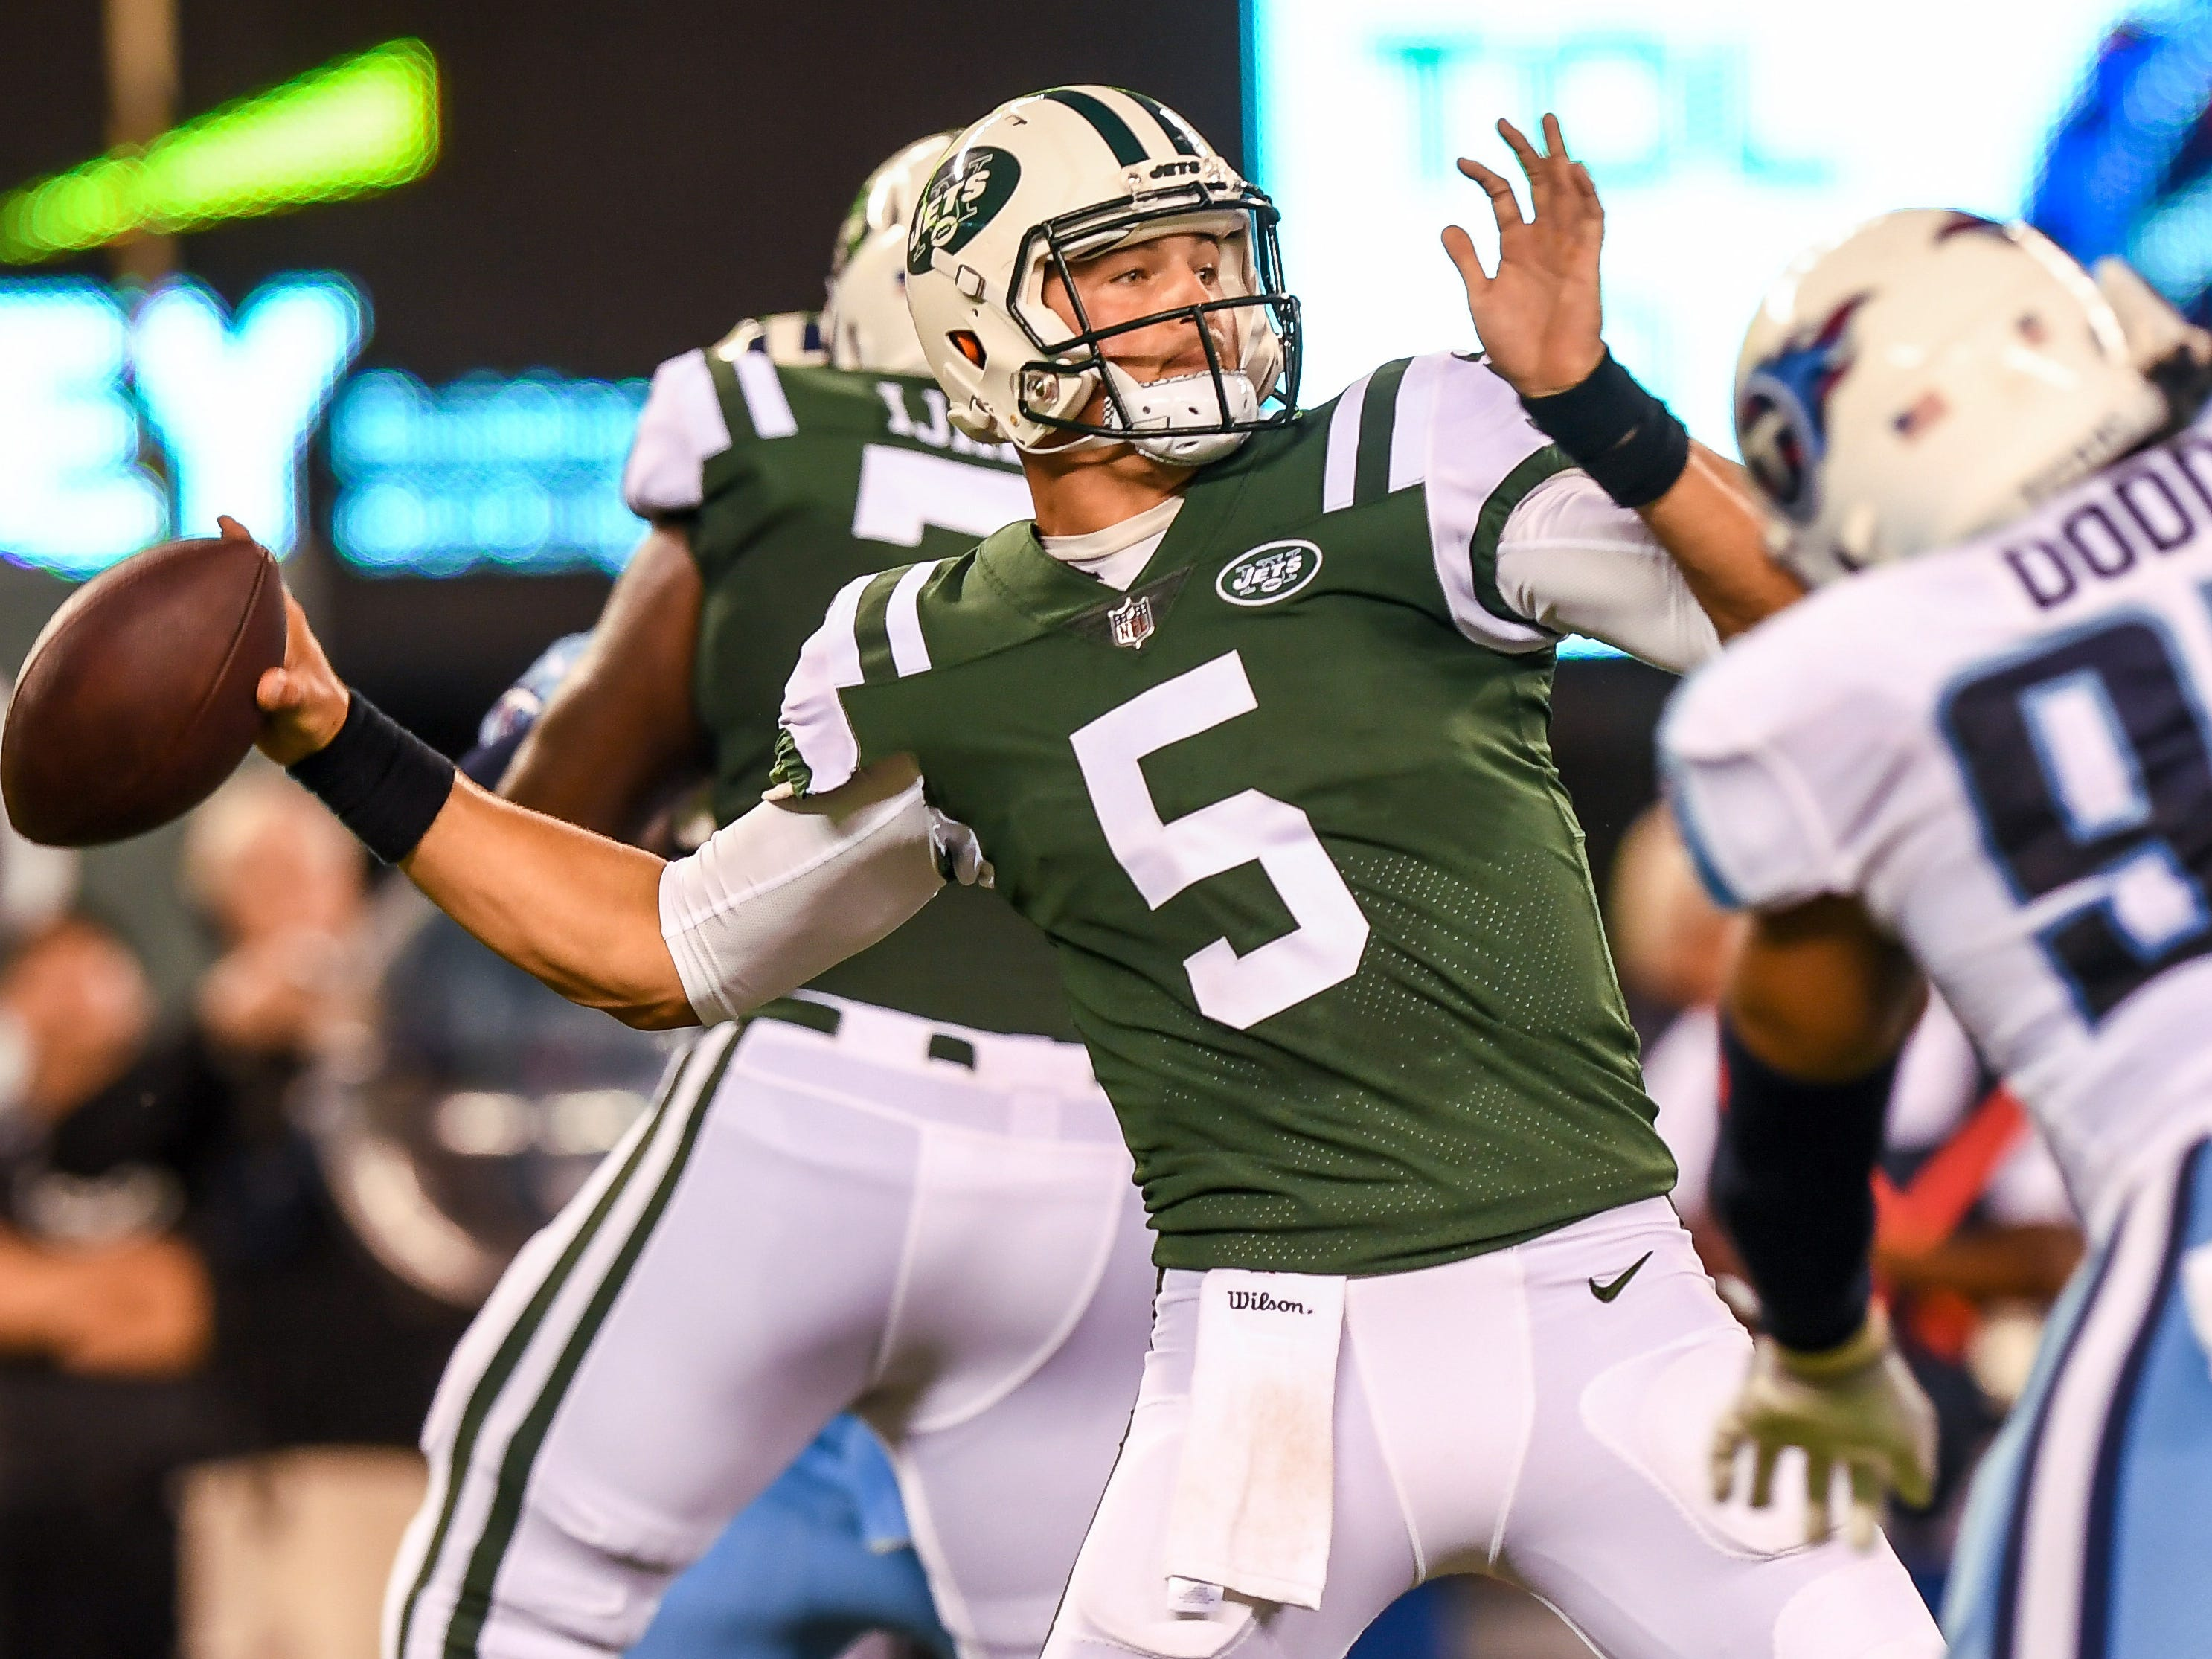 Christian Hackenberg was released by the New York Jets after last season.